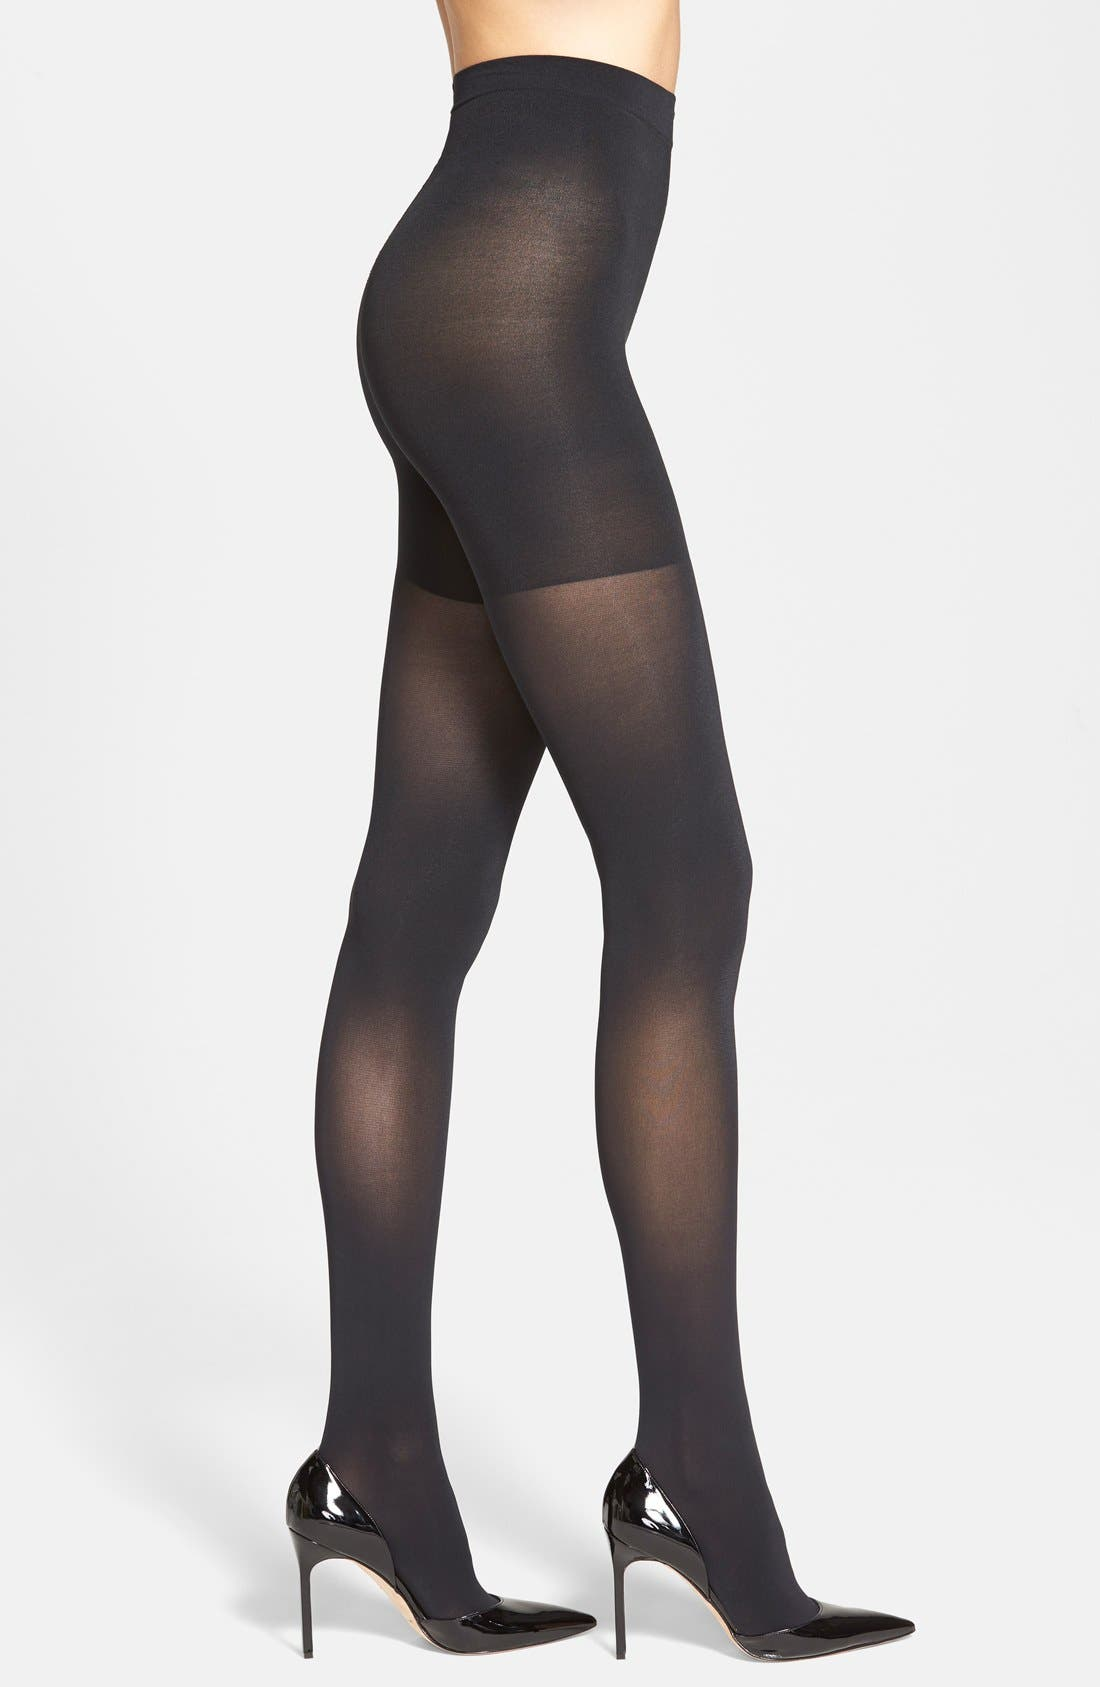 'Luxe' Leg Shaping Tights,                             Main thumbnail 1, color,                             VERY BLACK